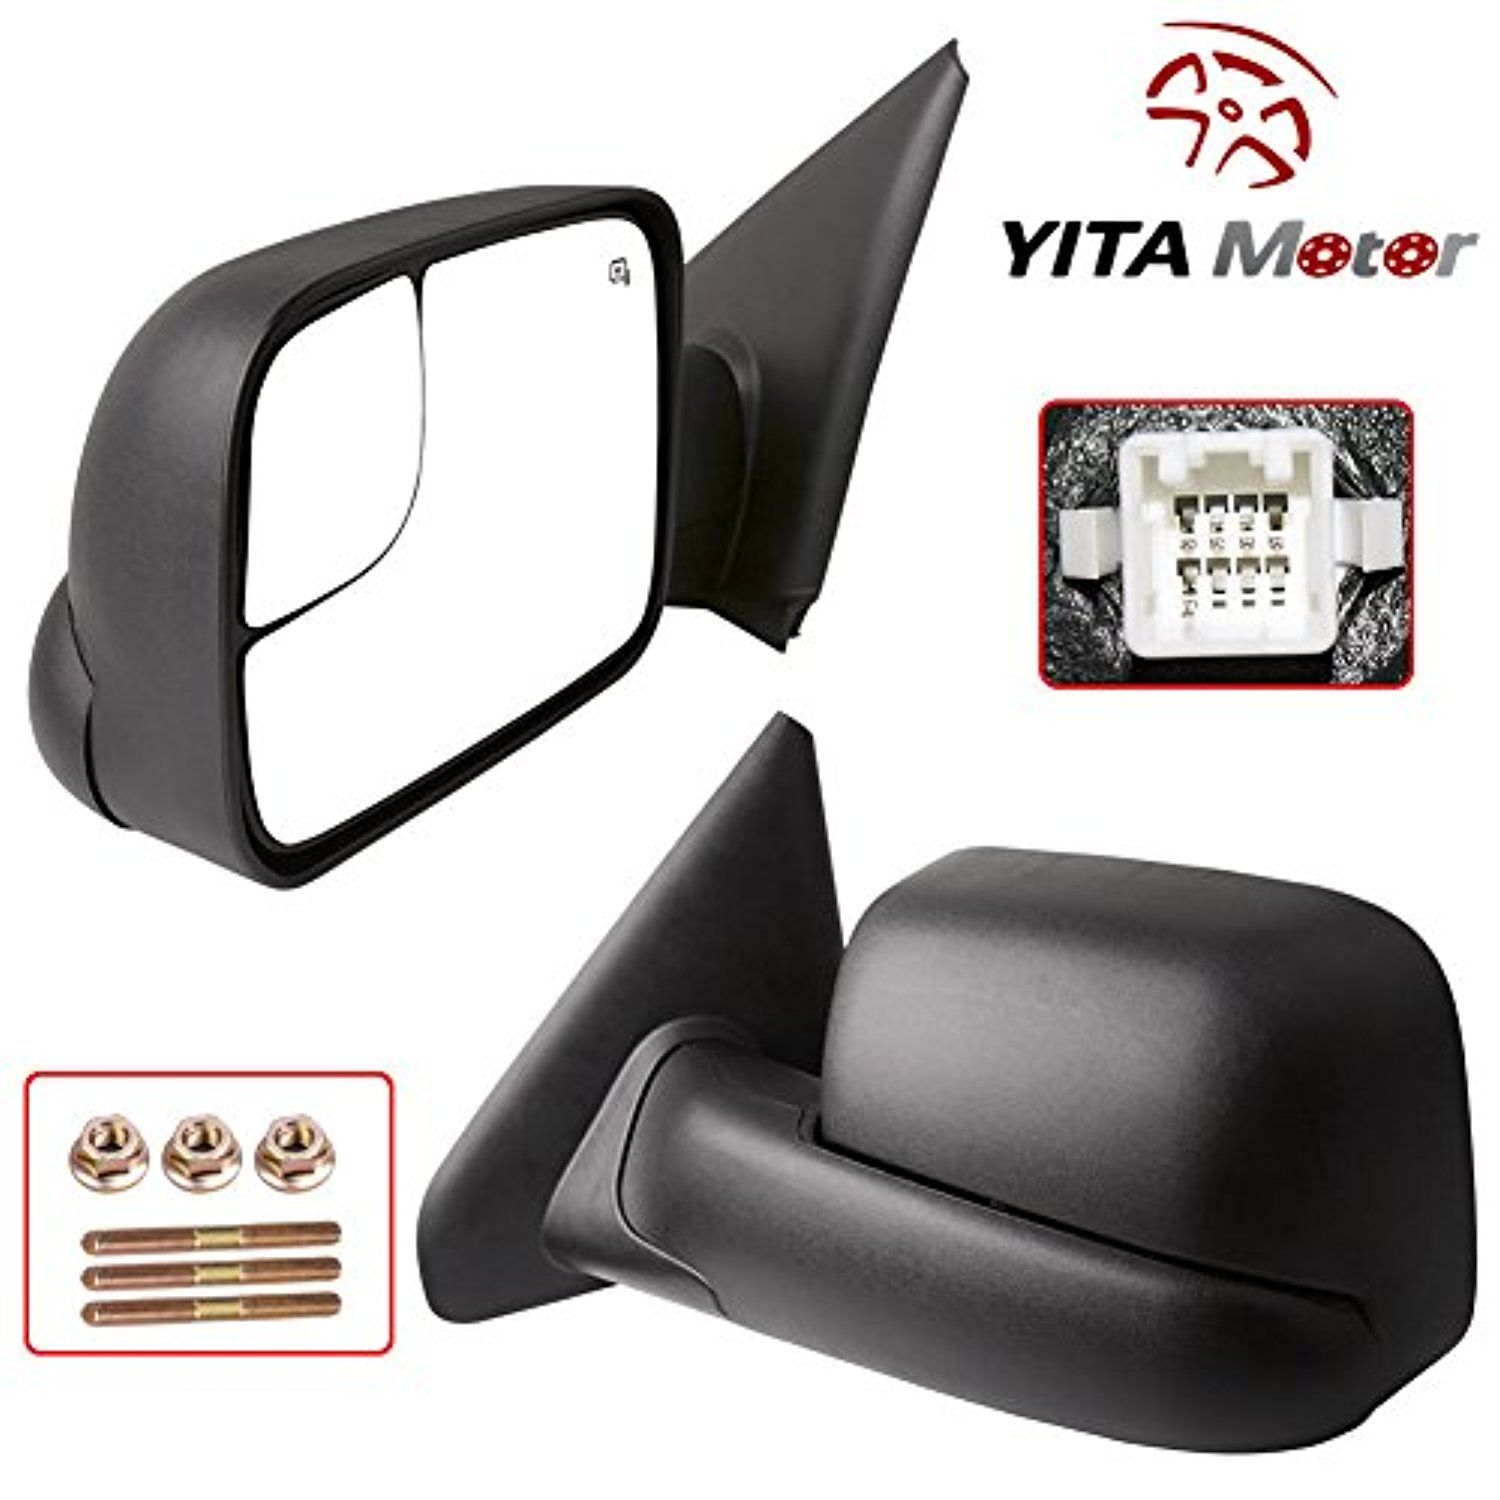 7cda5002984d2b77be1516faba395572 yitamotor towing mirrors for dodge 02 08 ram 1500 03 09 ram 2500 Dodge Ram 1500 Jack at n-0.co